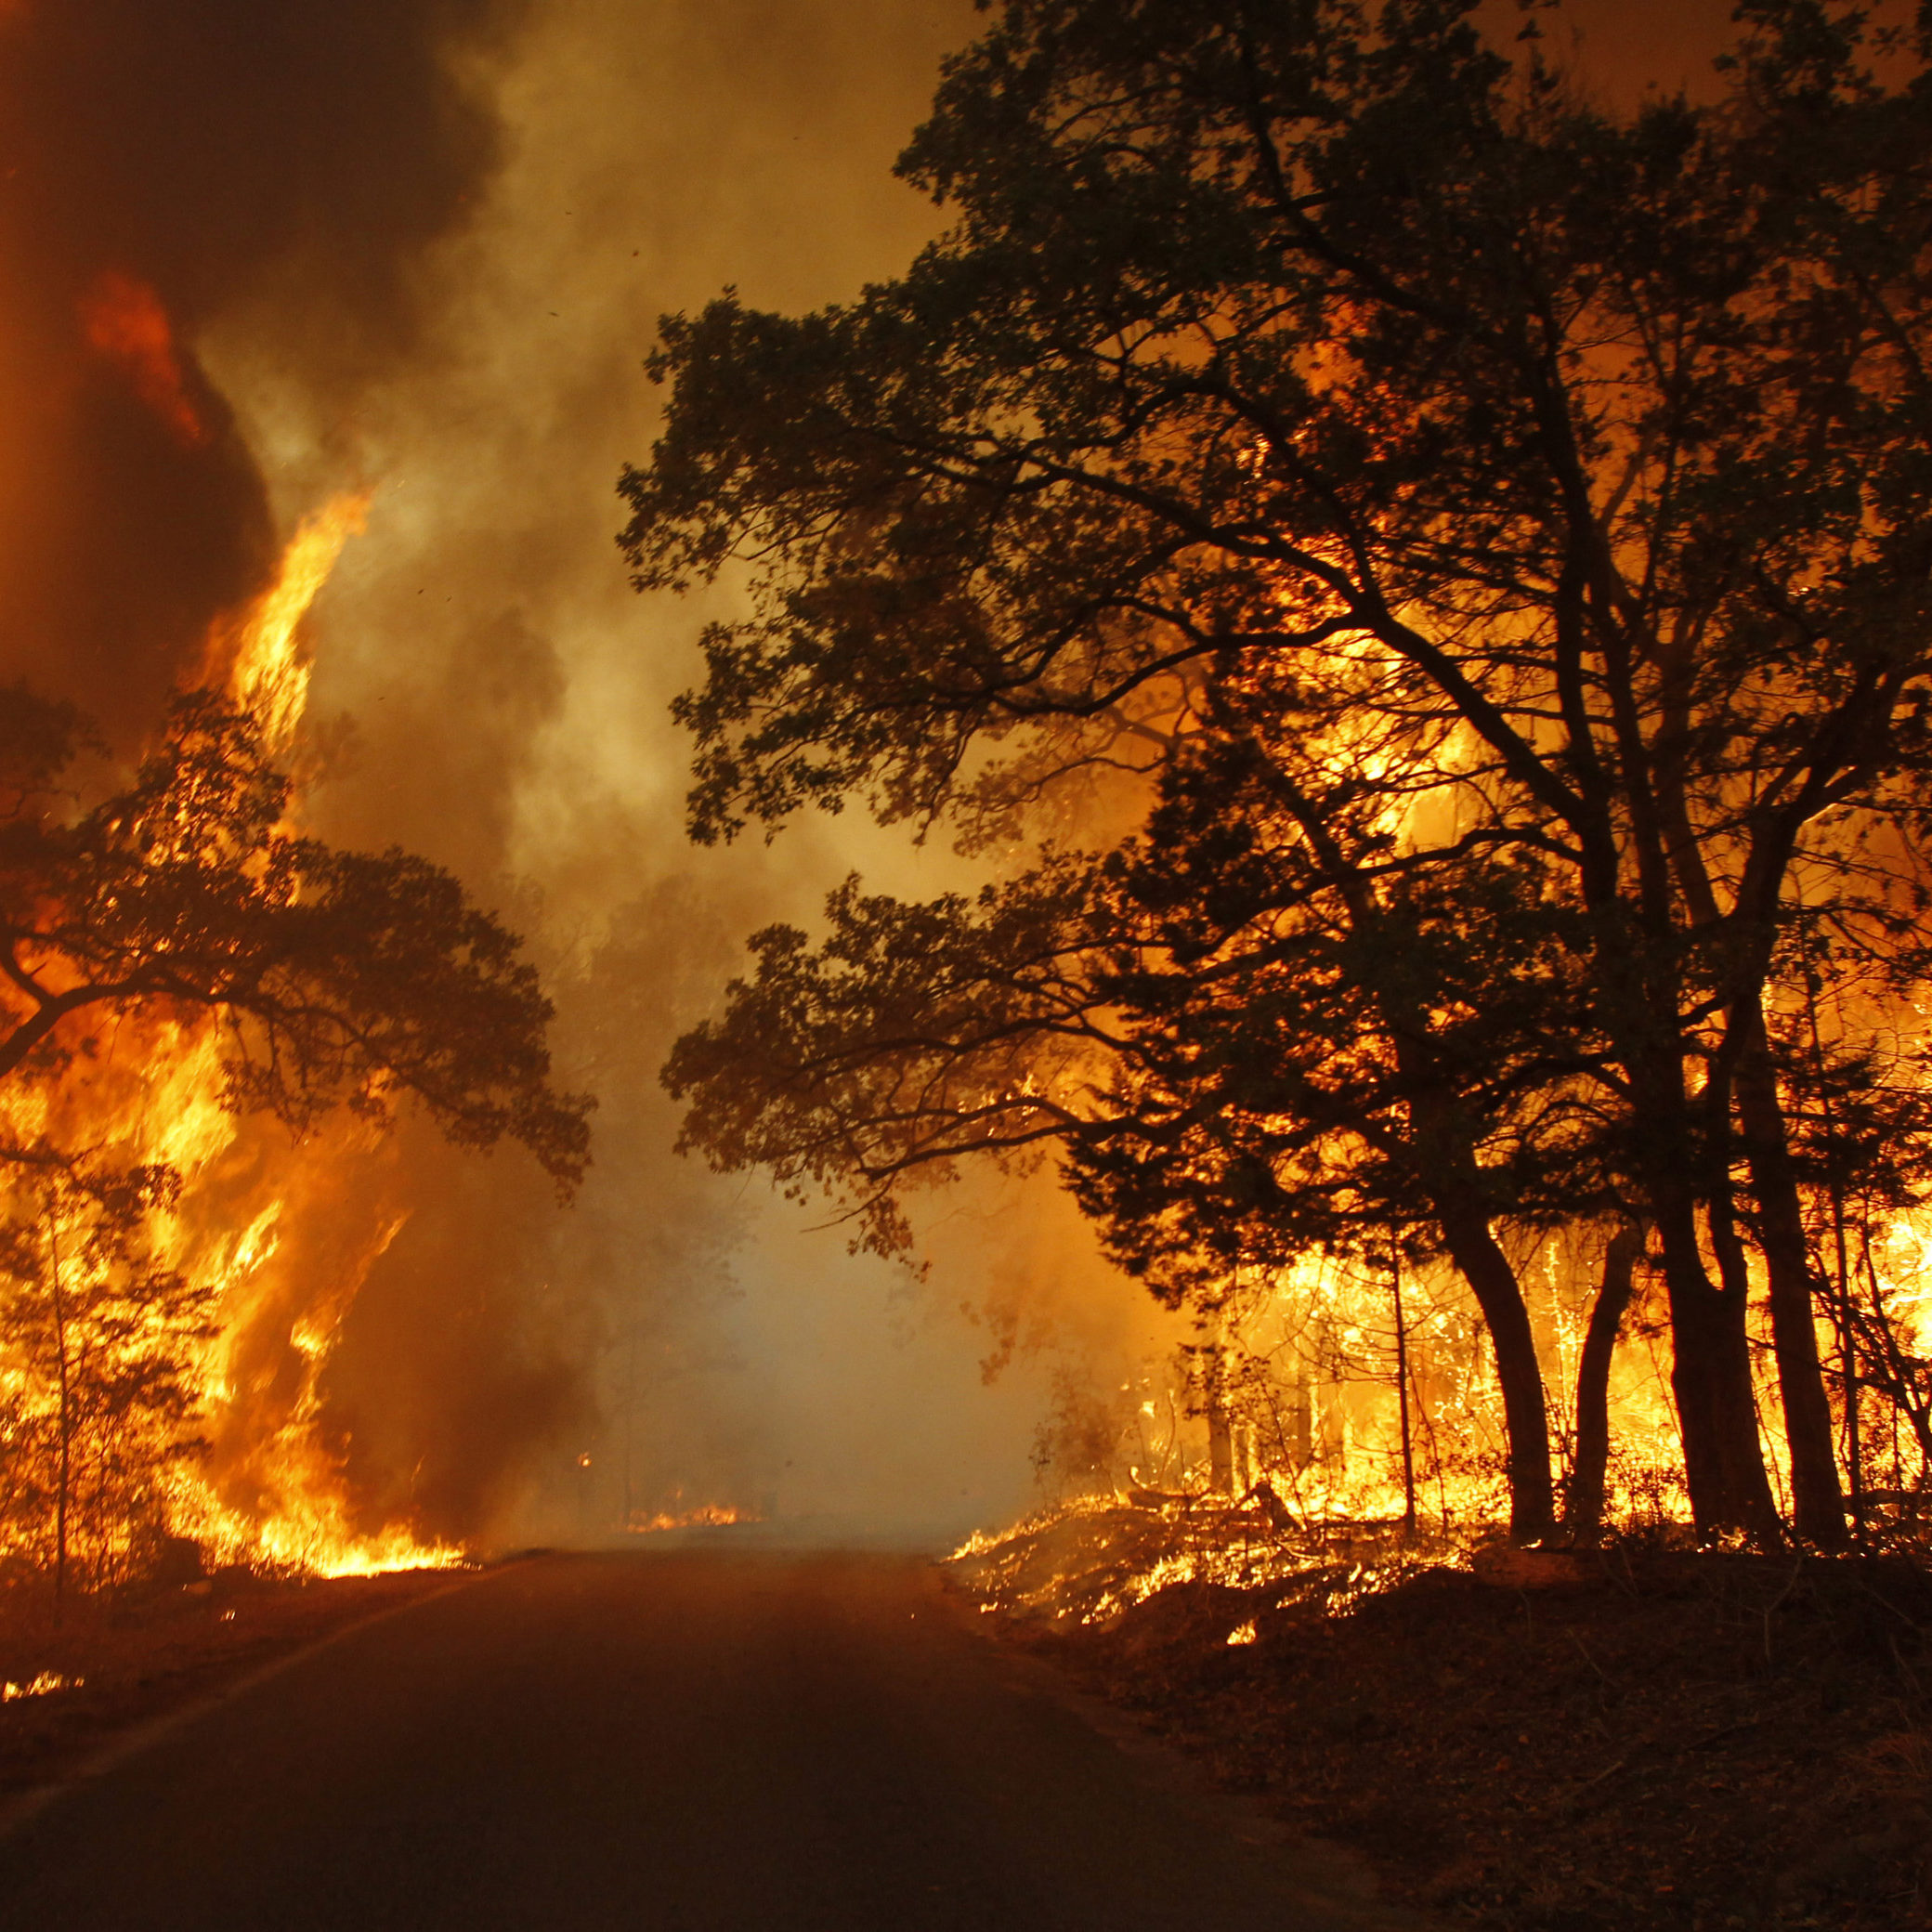 Flames engulf a road near Bastrop State Park as a wildfire burns out of control near Bastrop, Texas September 5, 2011. An estimated 1,000 homes are being threatened in Bastrop County, just east of Austin, as a 14,000-acre (5700-hectare) wildfire rages out of control, causing evacuations.  REUTERS/Mike Stone (UNITED STATES - Tags: ENVIRONMENT DISASTER)